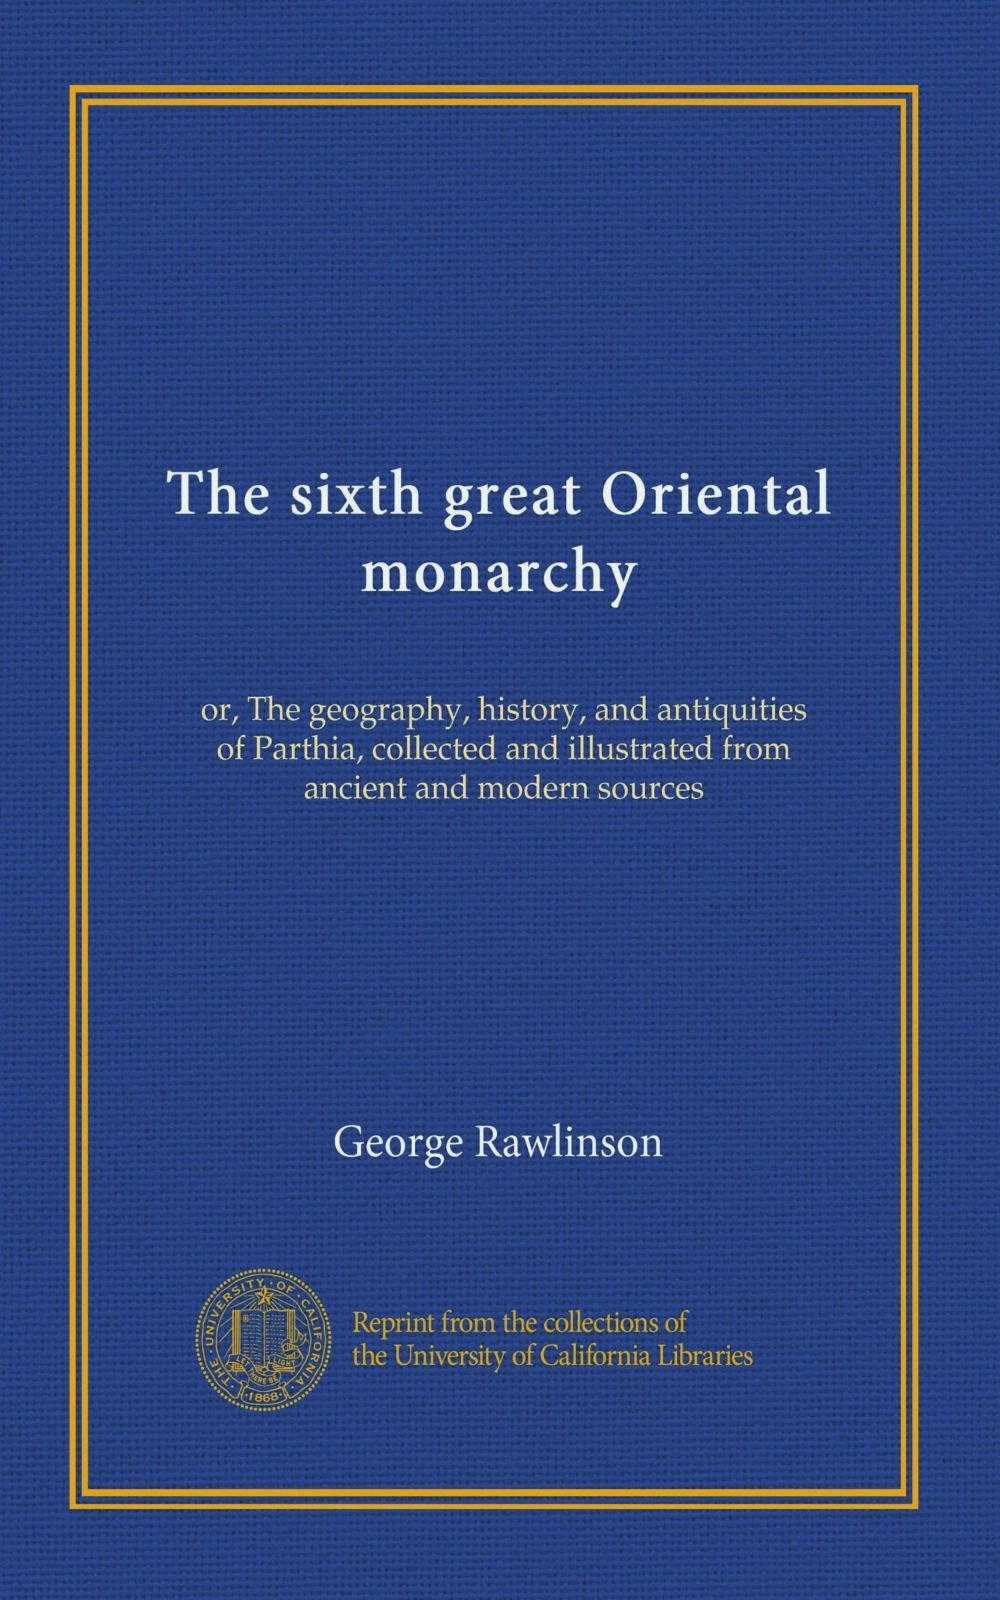 Read Online The sixth great Oriental monarchy: or, The geography, history, and antiquities of Parthia, collected and illustrated from ancient and modern sources PDF